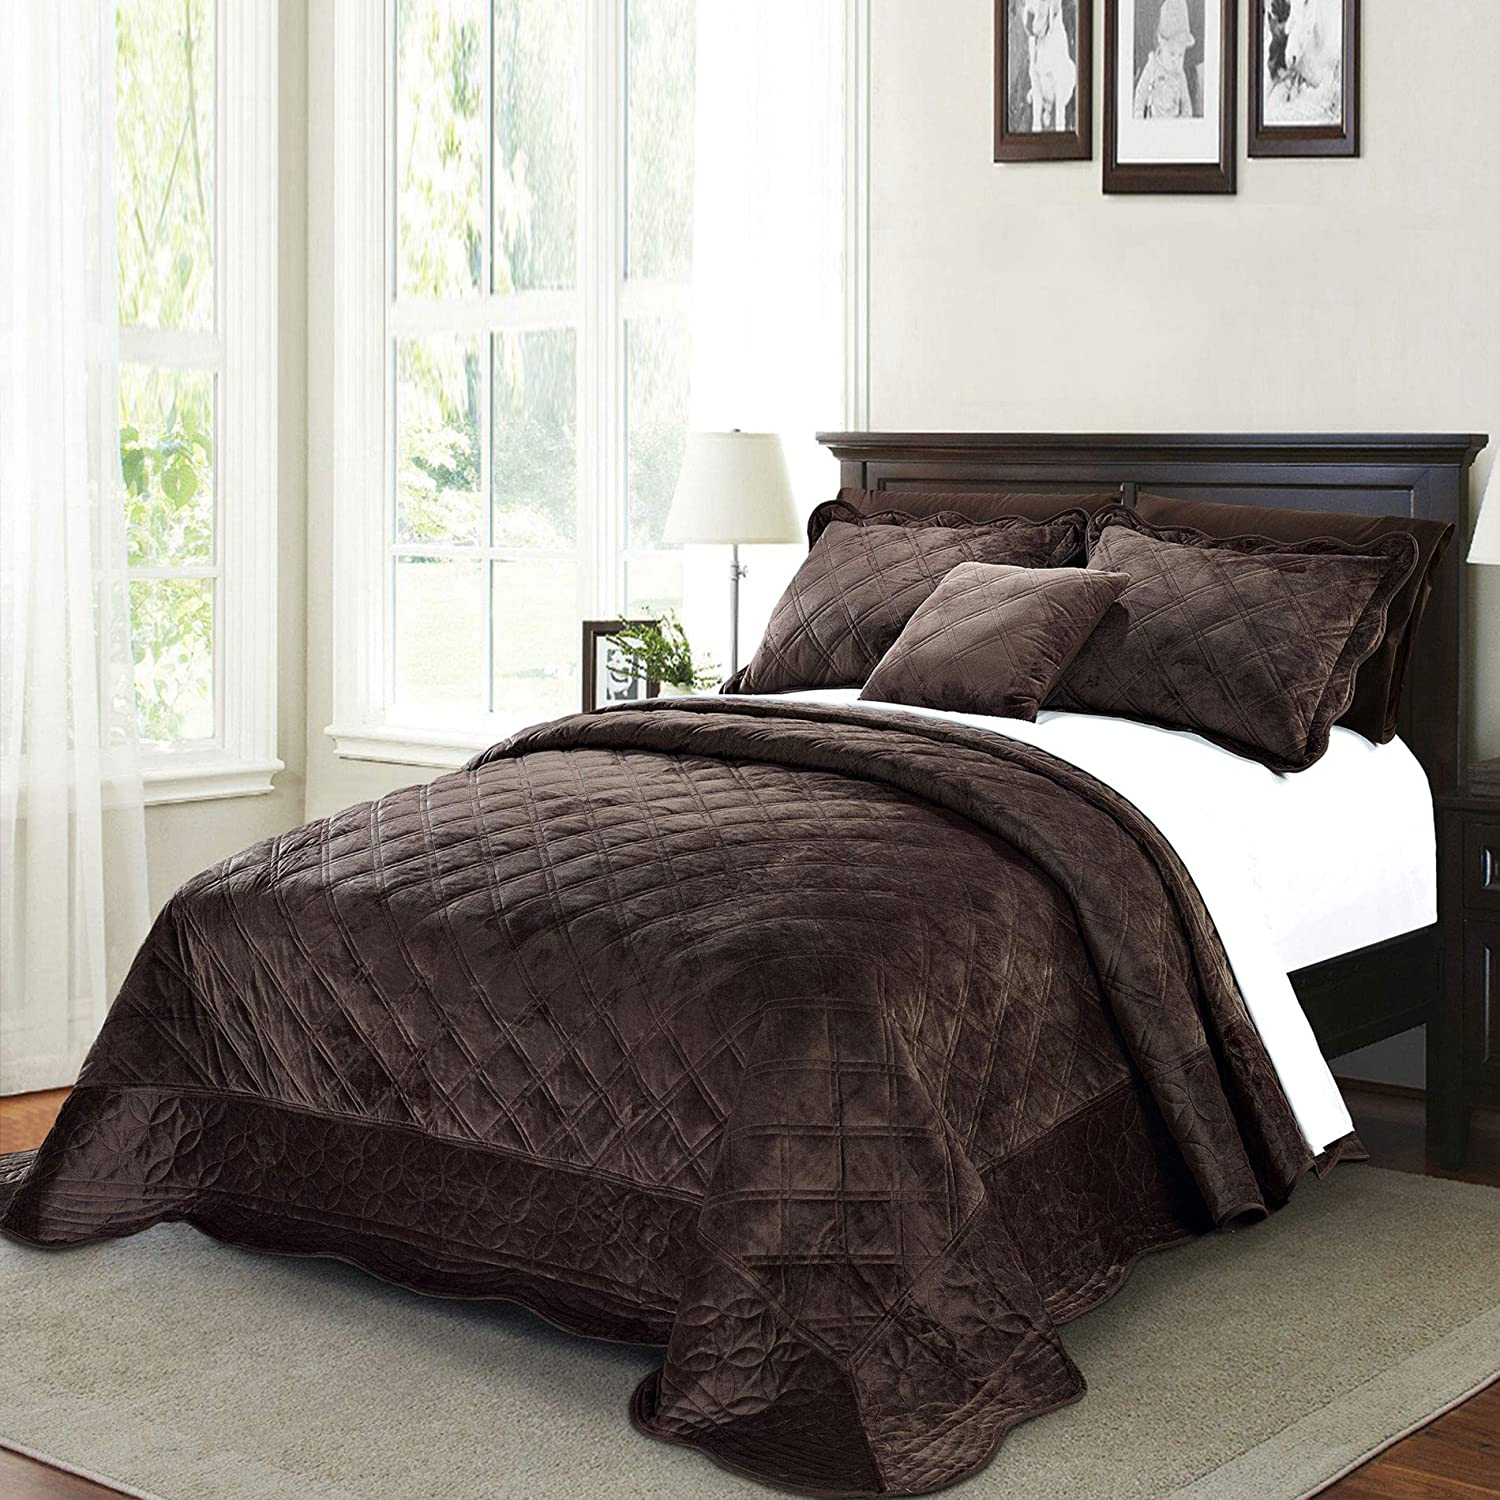 """Home Soft Things Supersoft Bedspread & Coverlet Set, 120"""" x 120"""", Chocolate"""